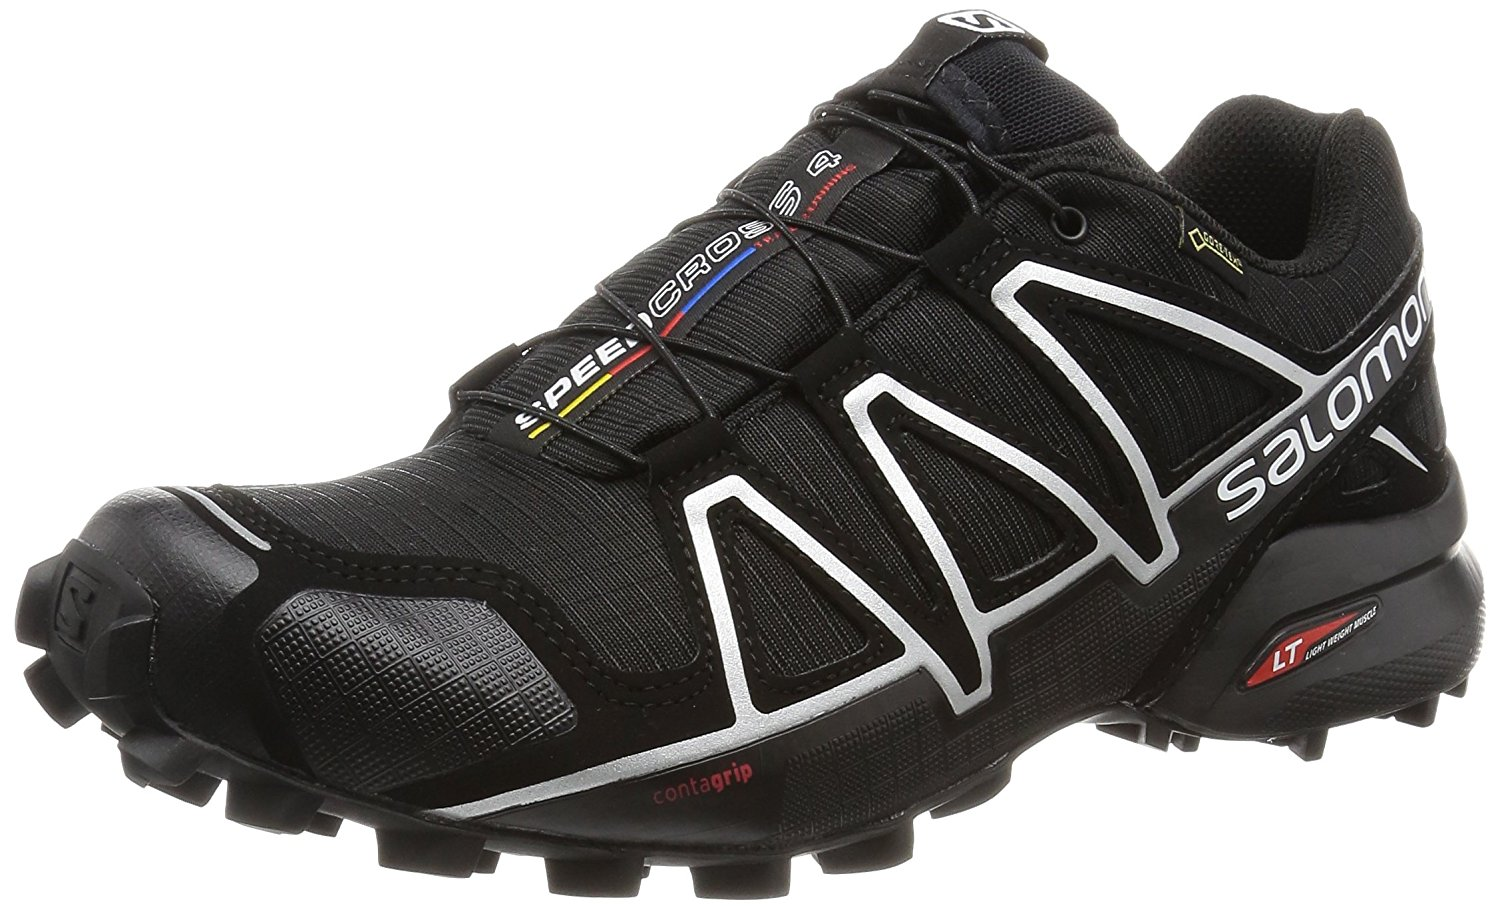 Trail Gtx Salomon At Speedcross 4 £80 Running 13 Amazon Shoes Men's WrCedBxo